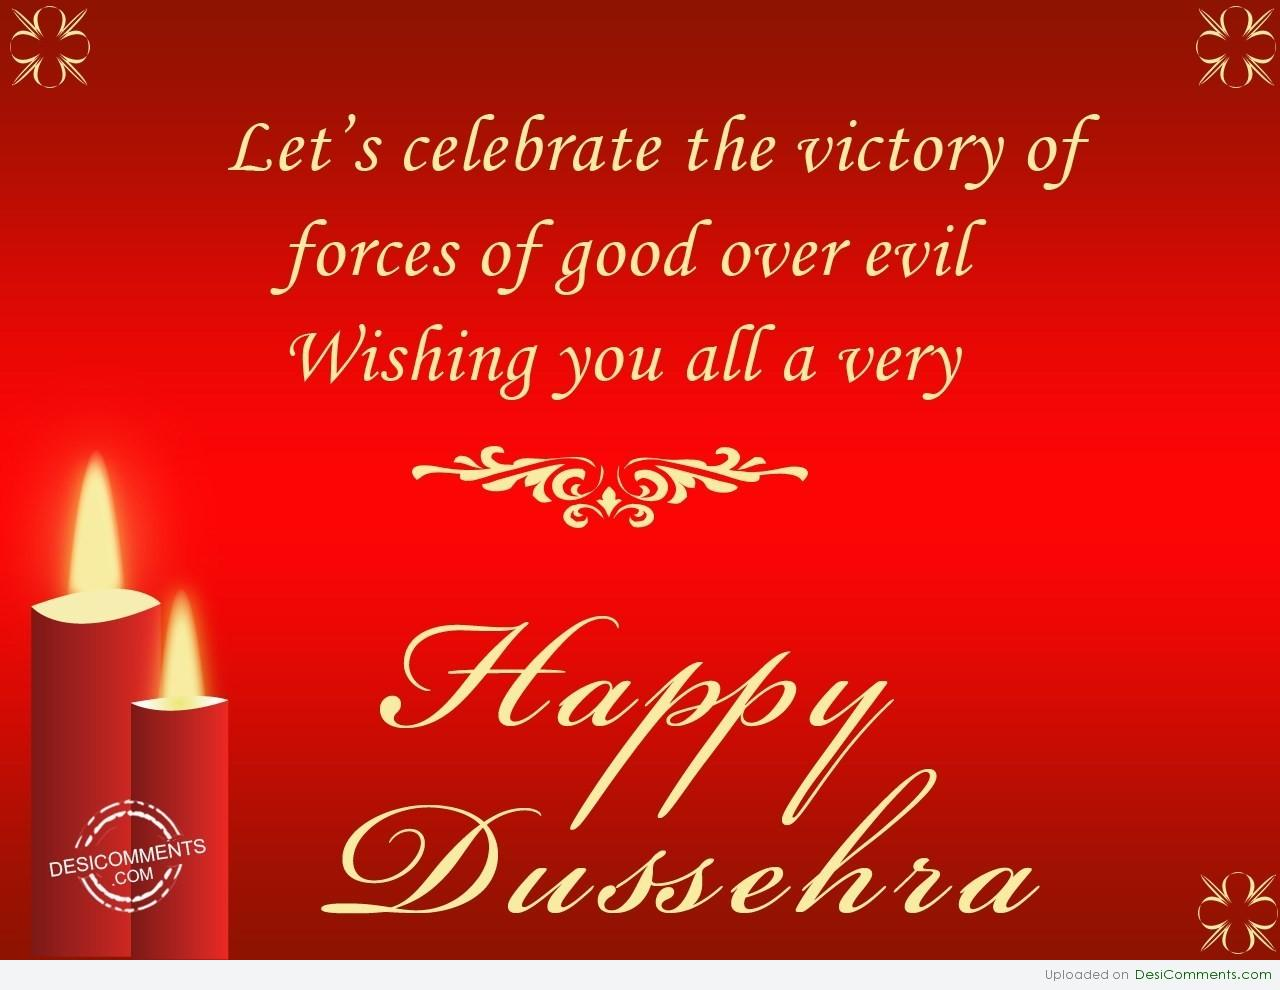 50 beautiful happy dussehra greeting photos and pictures lets celebrate the victory of forces of good over evil wishing you all a very happy kristyandbryce Images